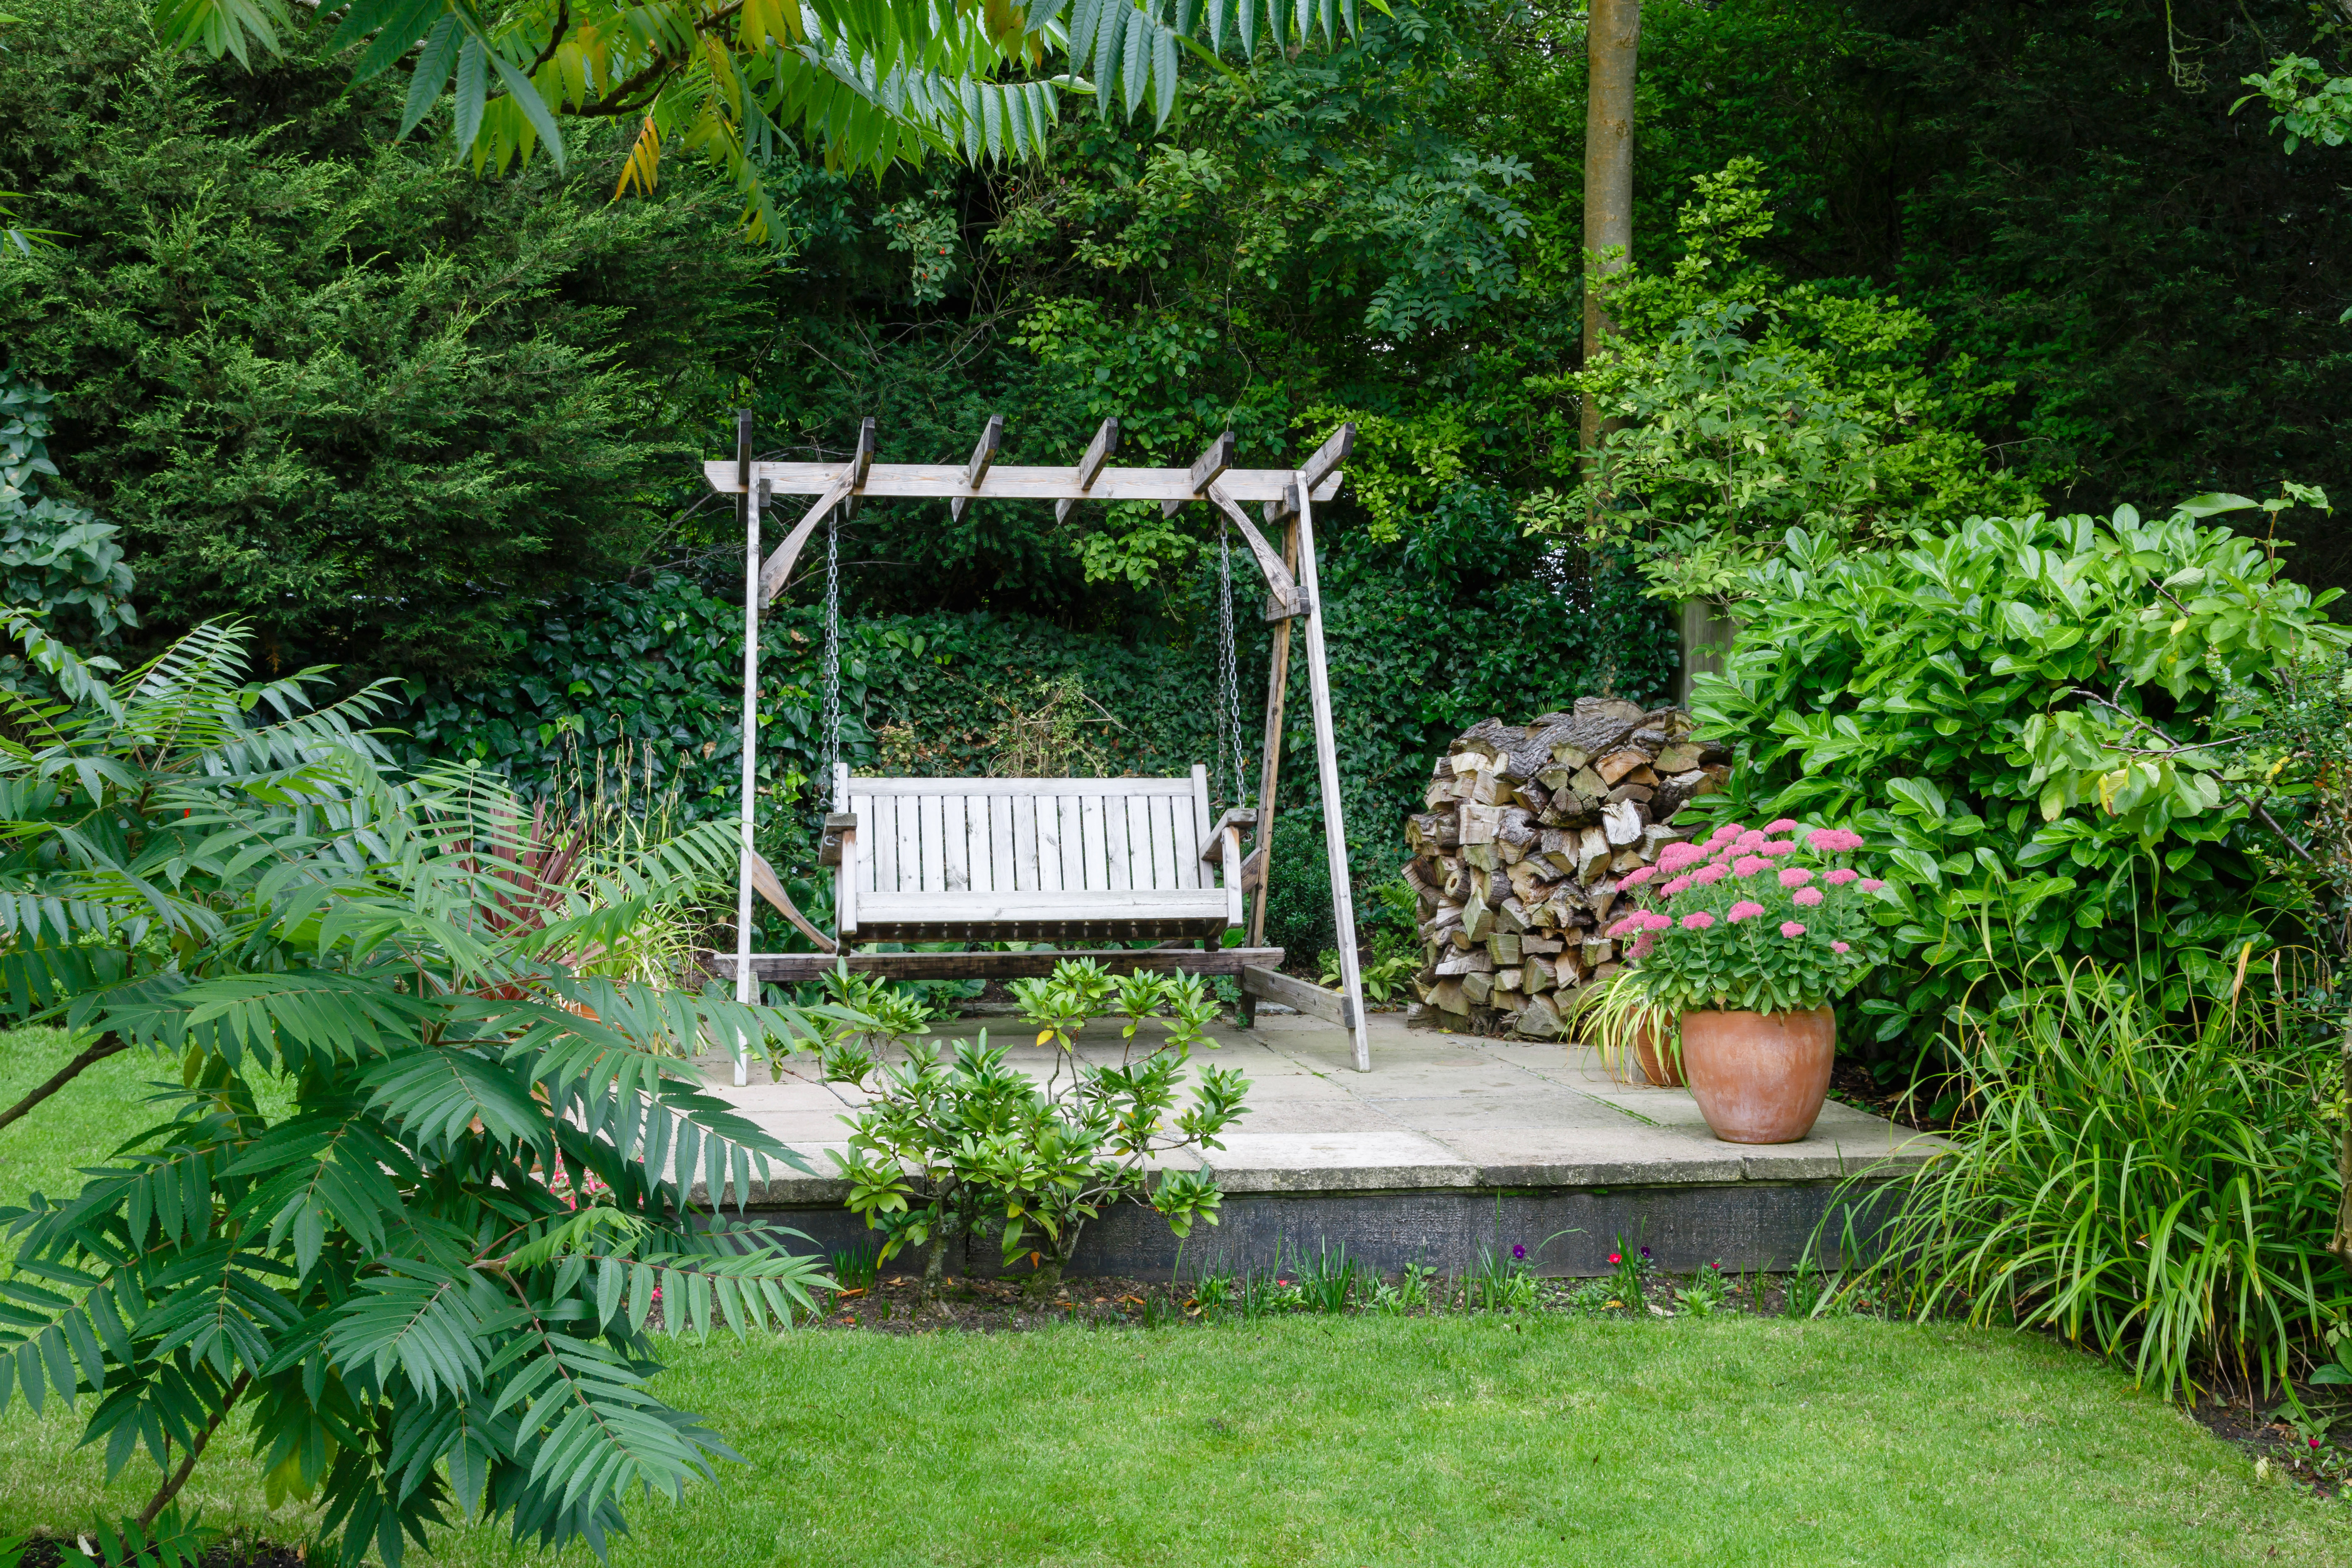 backyard-getaway-main Ideas Small Backyard Get Away on fireplace ideas, fencing ideas, small garden ideas, small fountain ideas, small vegetable garden, small playground ideas, inexpensive landscaping ideas, fire pit ideas, small bedroom ideas, small pool ideas, mailbox landscaping ideas, carport ideas, small homes and cottages, kitchen ideas, small yard landscaping ideas, small japanese garden designs, patio ideas, small bathroom ideas, deck ideas,